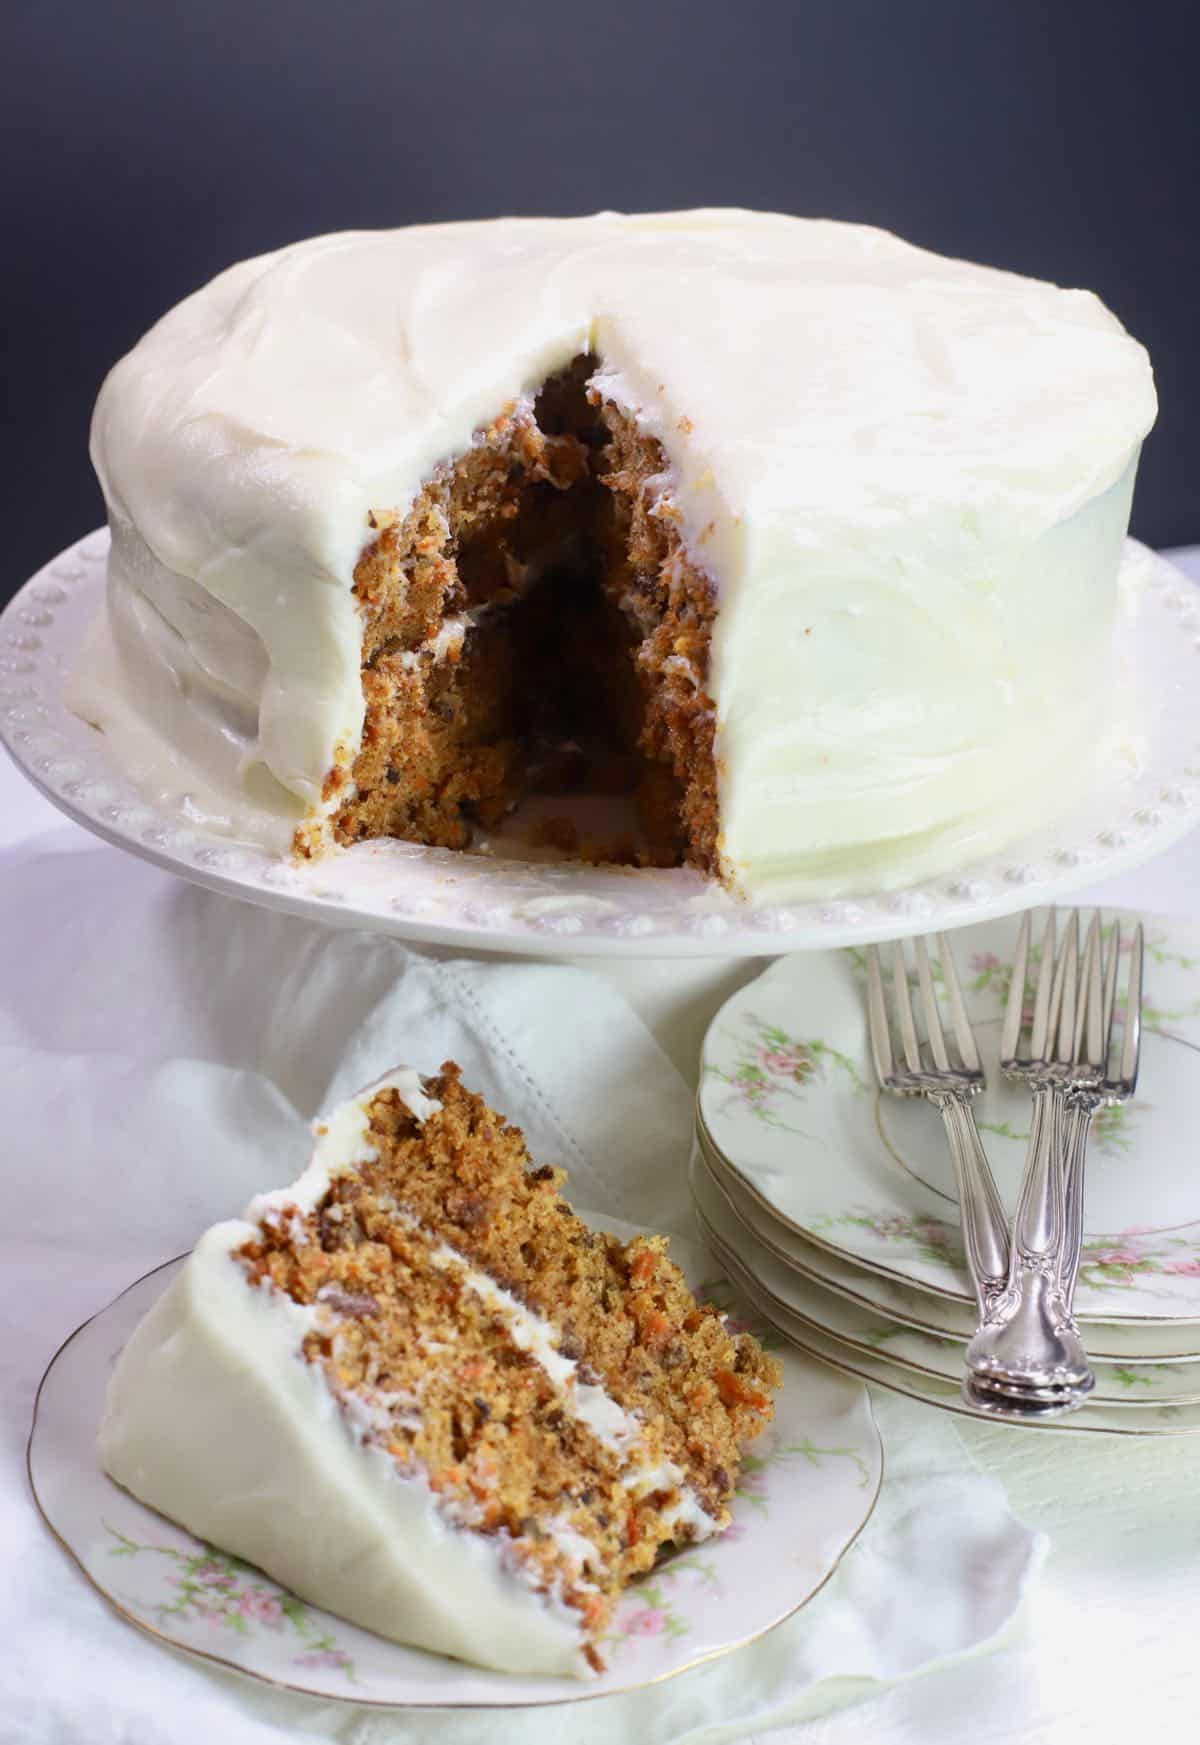 Carrot cake on a cake platter with a slice cut.